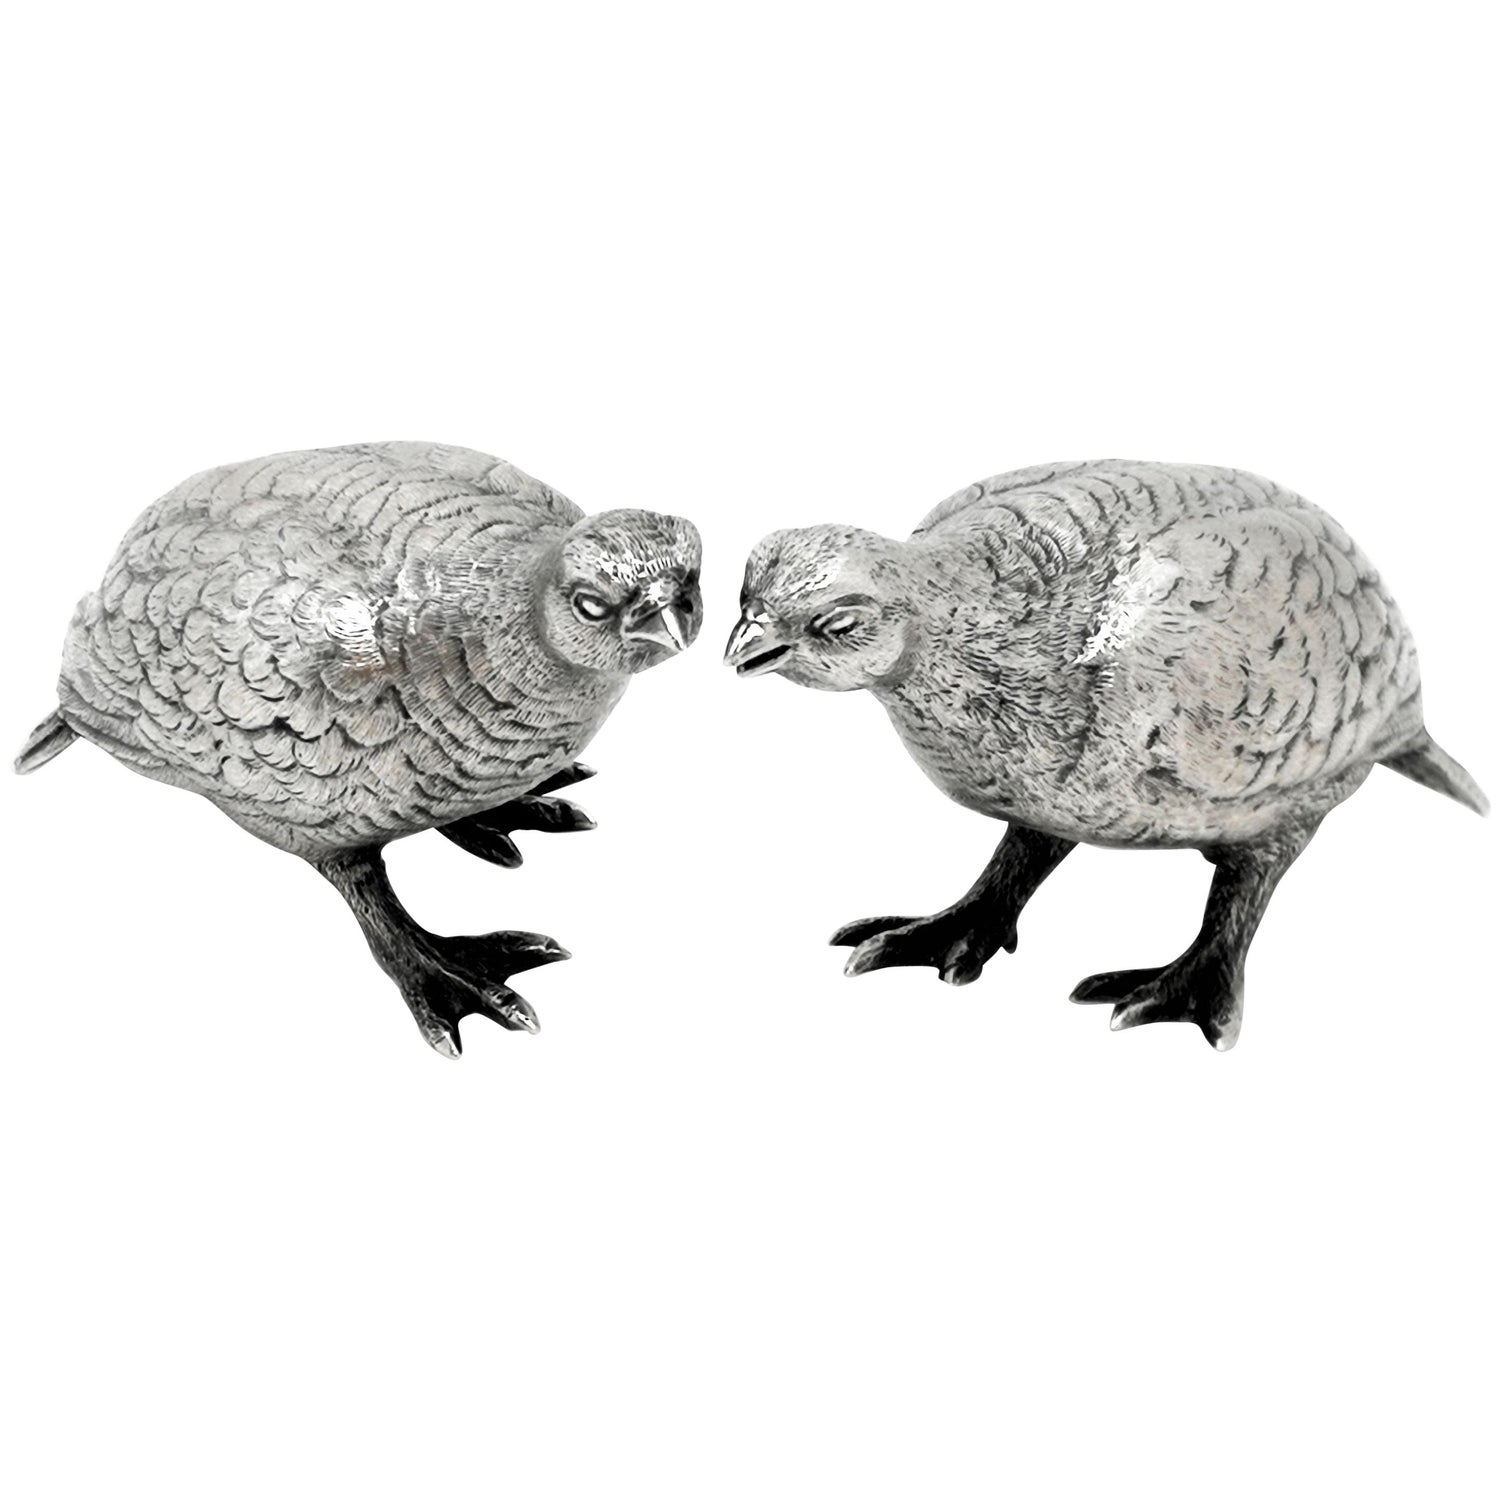 Pair of Sterling Silver Grouse Birds Model Figures 1964